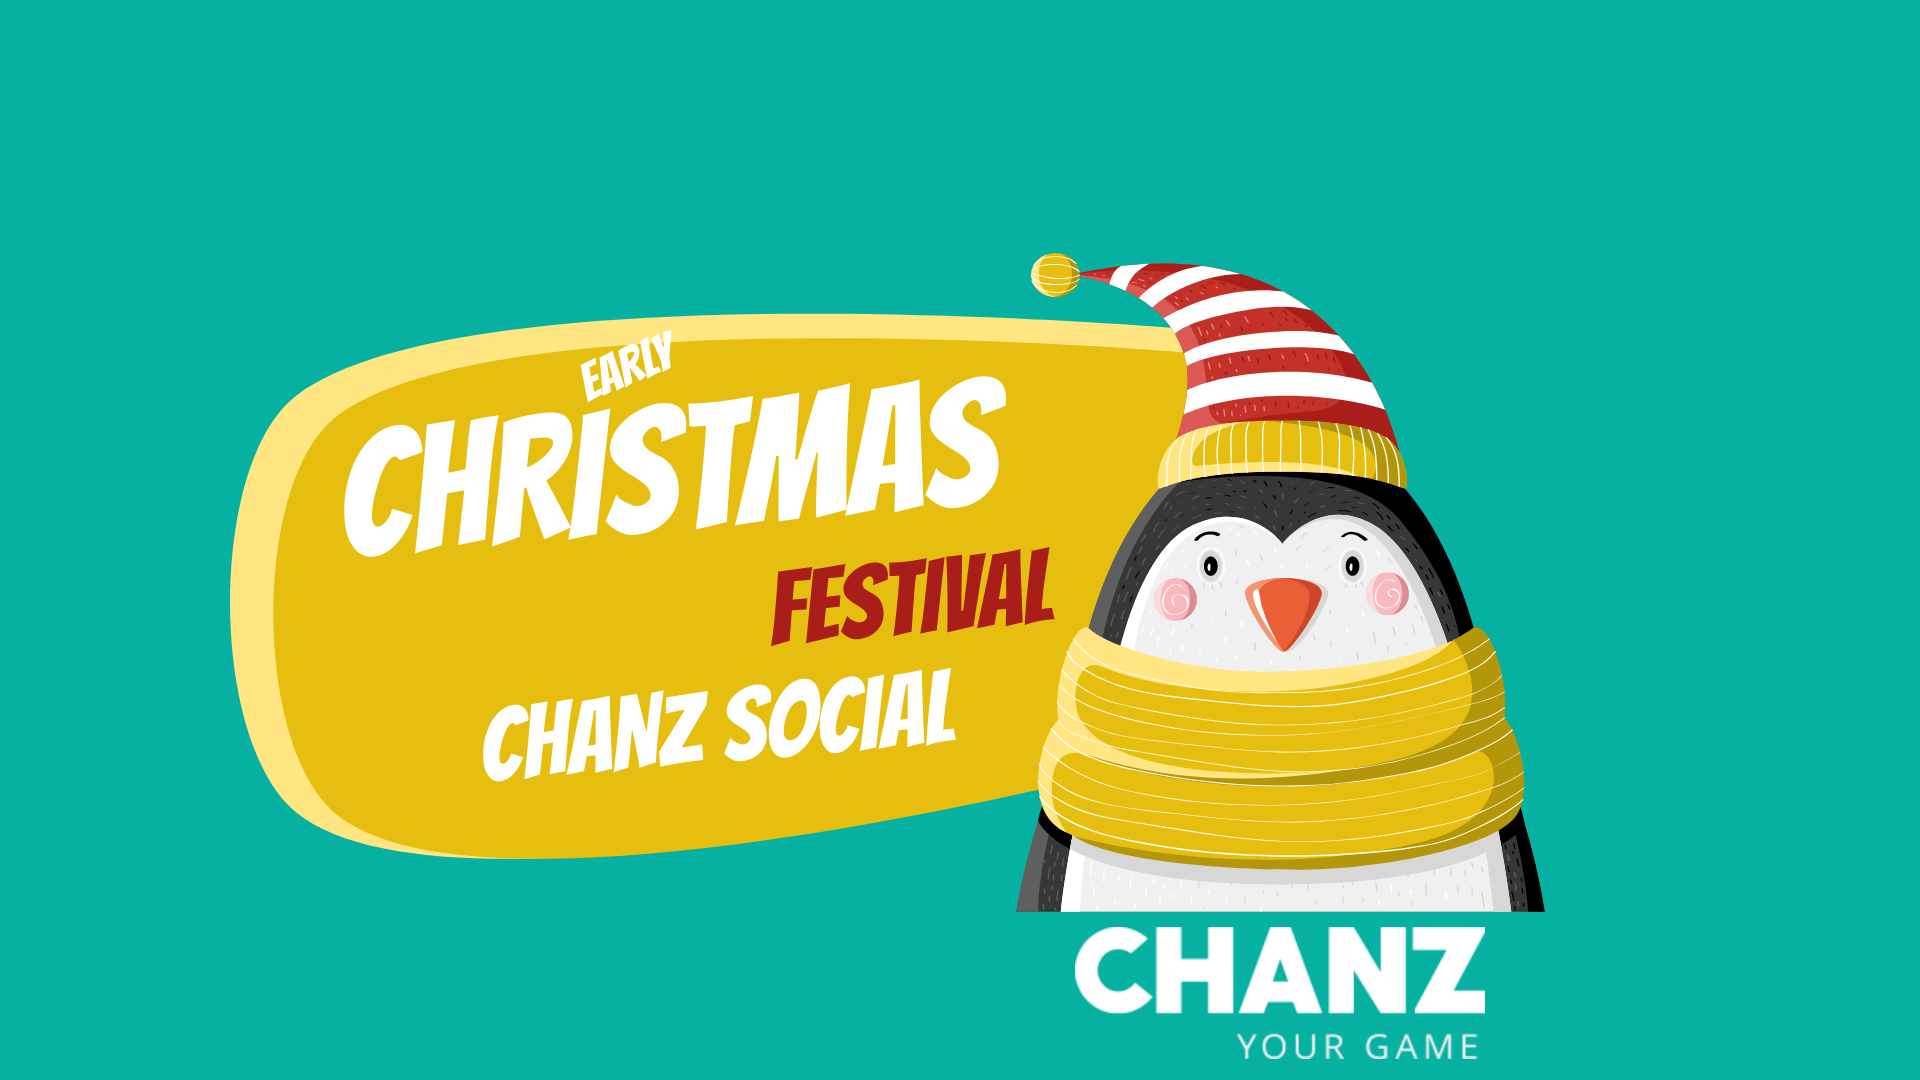 Day 2 – Chanz X-mas early access